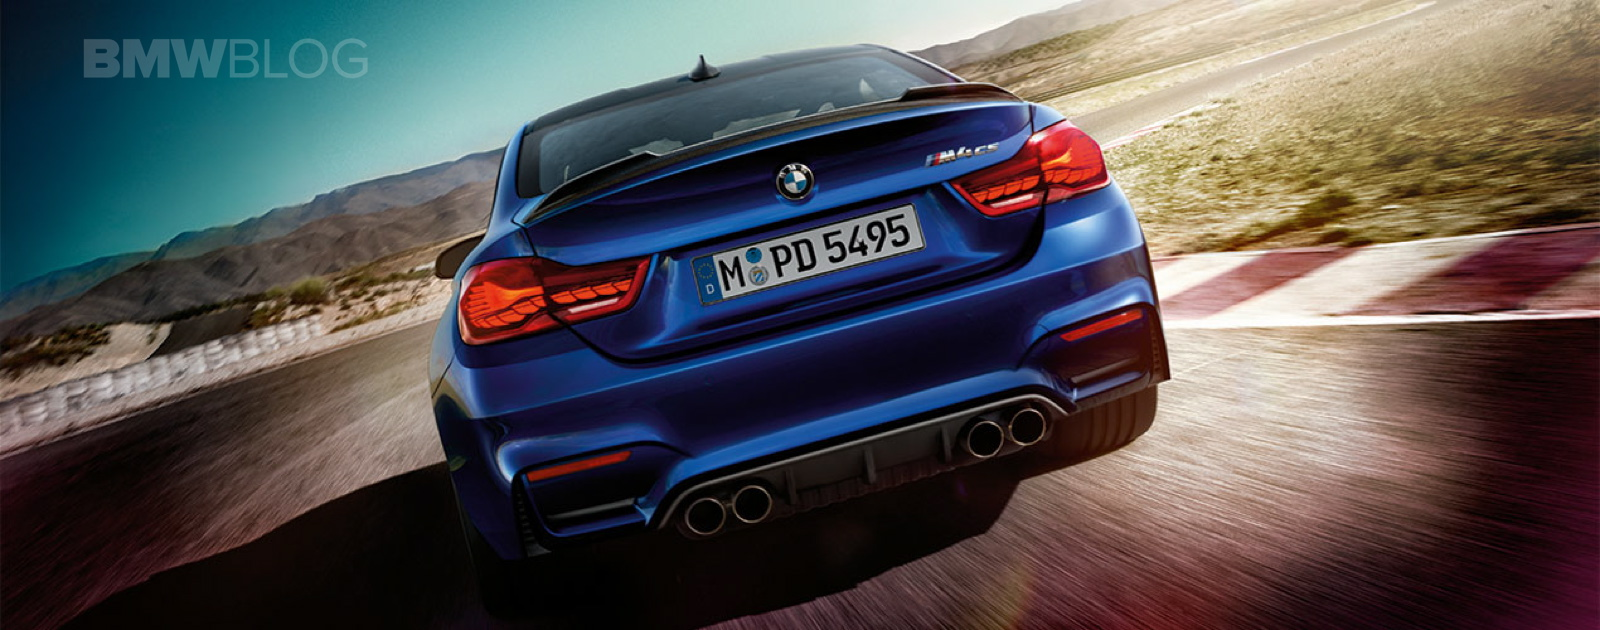 An Important Role In Setting Impressive Lap Time At The Nurburgring Nordschleife It Took M4 CS 7 Minutes And 38 Seconds To Famous Track